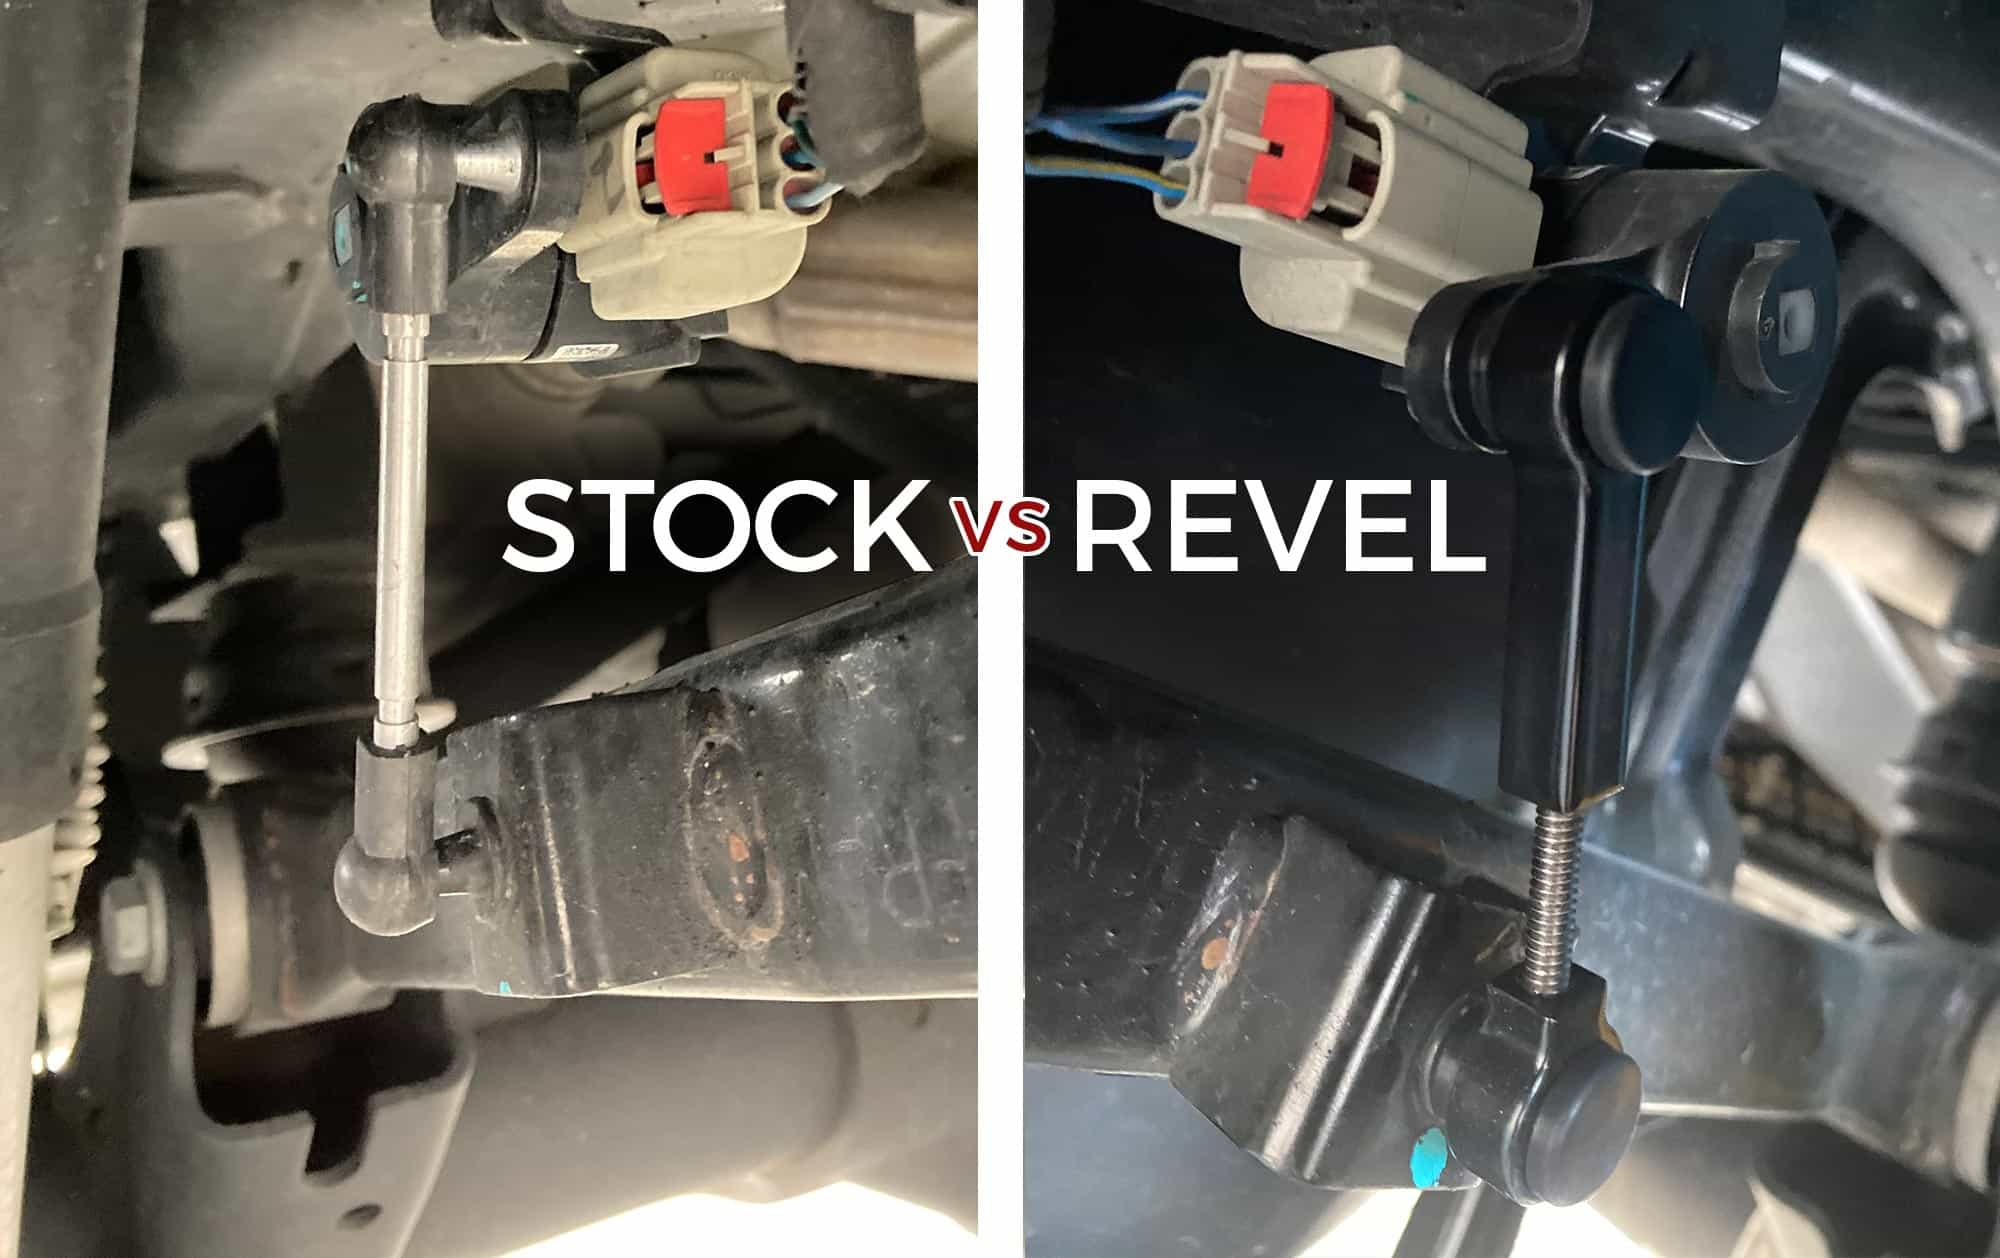 Stock air suspension link for Ram 1500 compared to a revel adjustable air suspension link